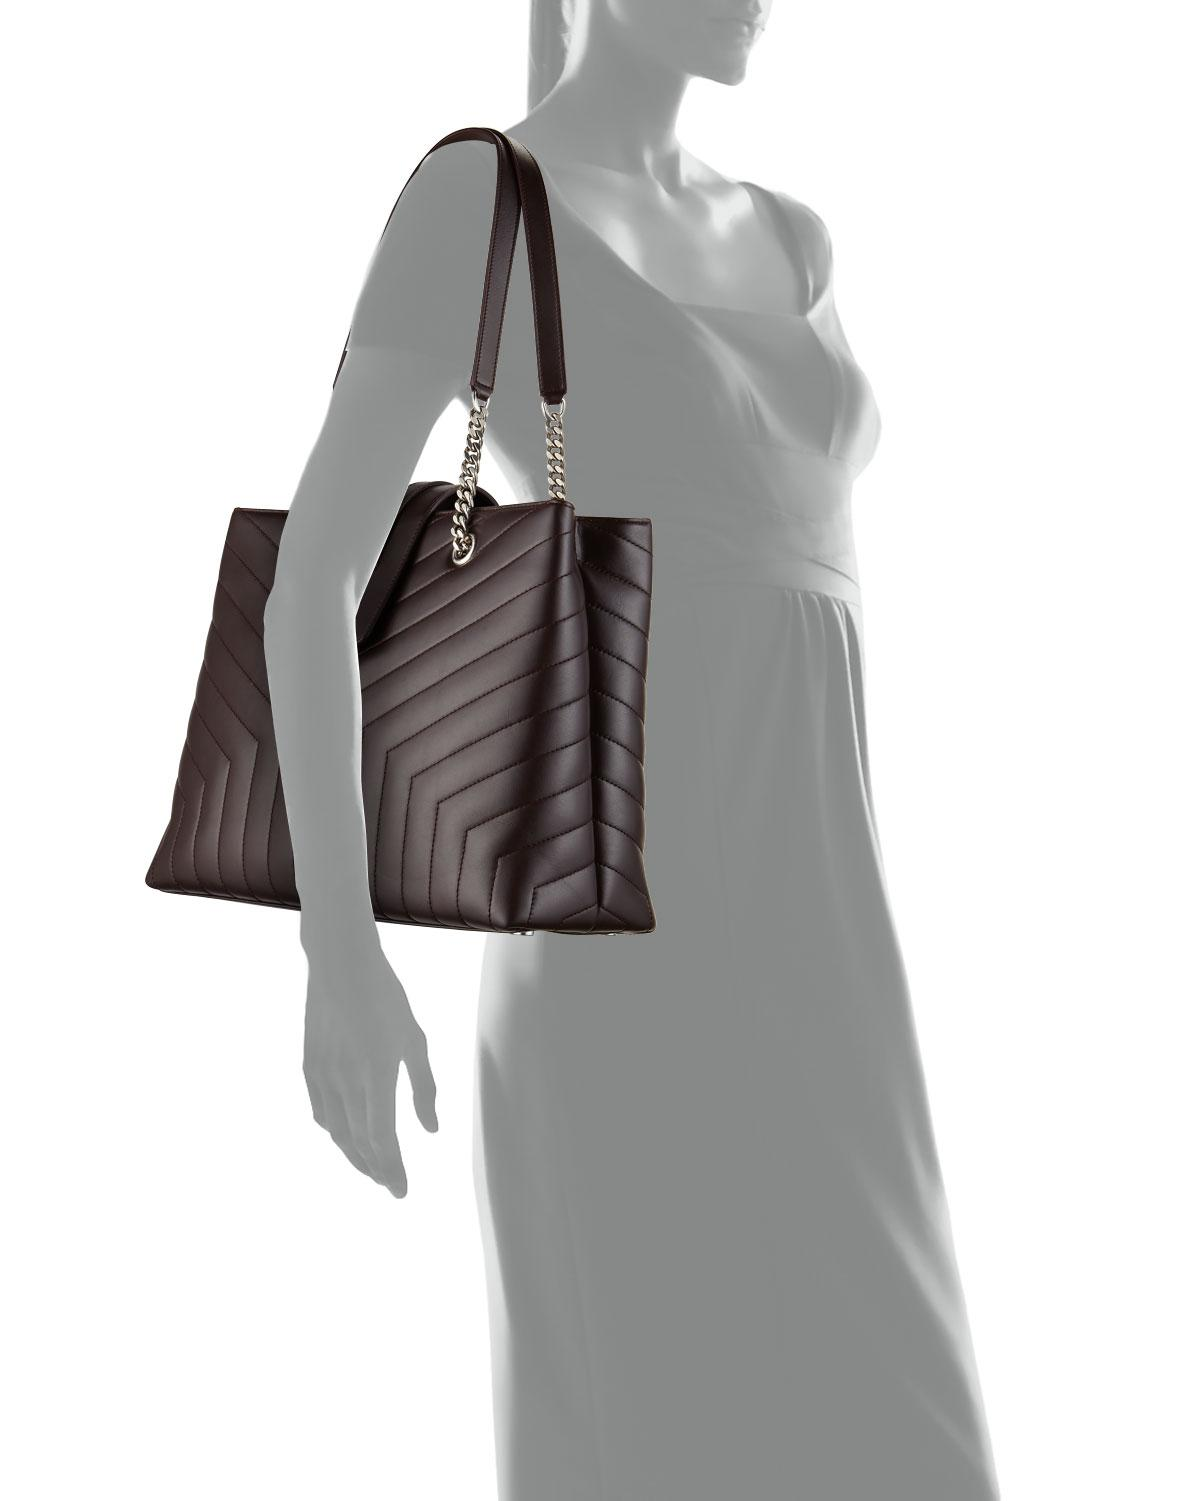 ... Loulou Monogram Ysl Large Quilted Shoulder Tote Bag - Nickel Oxide  Hardware. View fullscreen a5bf7fe098